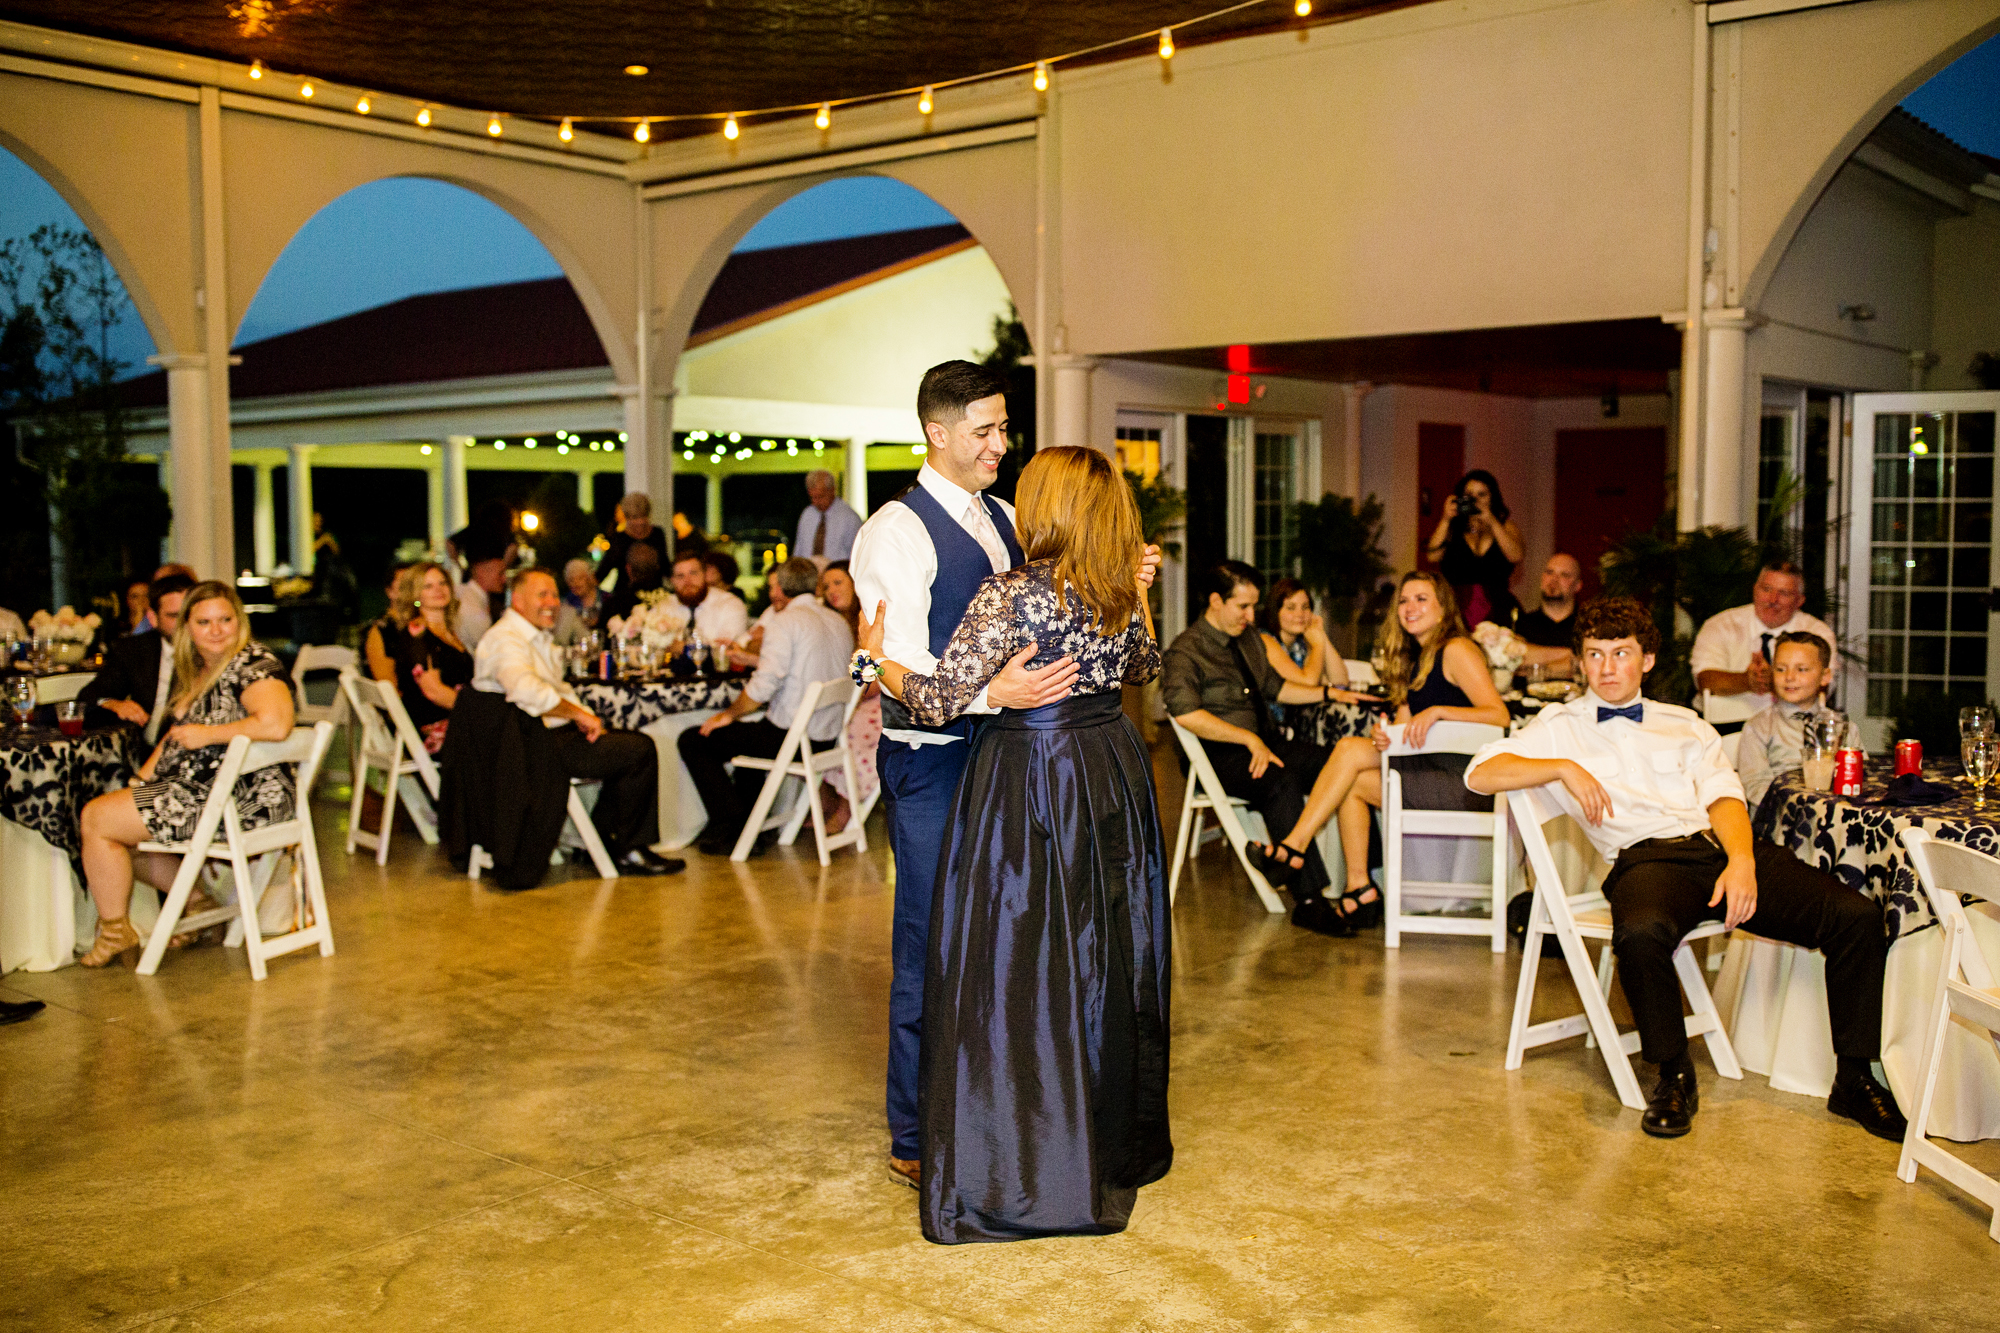 Seriously_Sabrina_Photography_Dayton_Ohio_Great_Gatsby_Wedding_Cedar_Springs_Pavillion_Harper_120.jpg